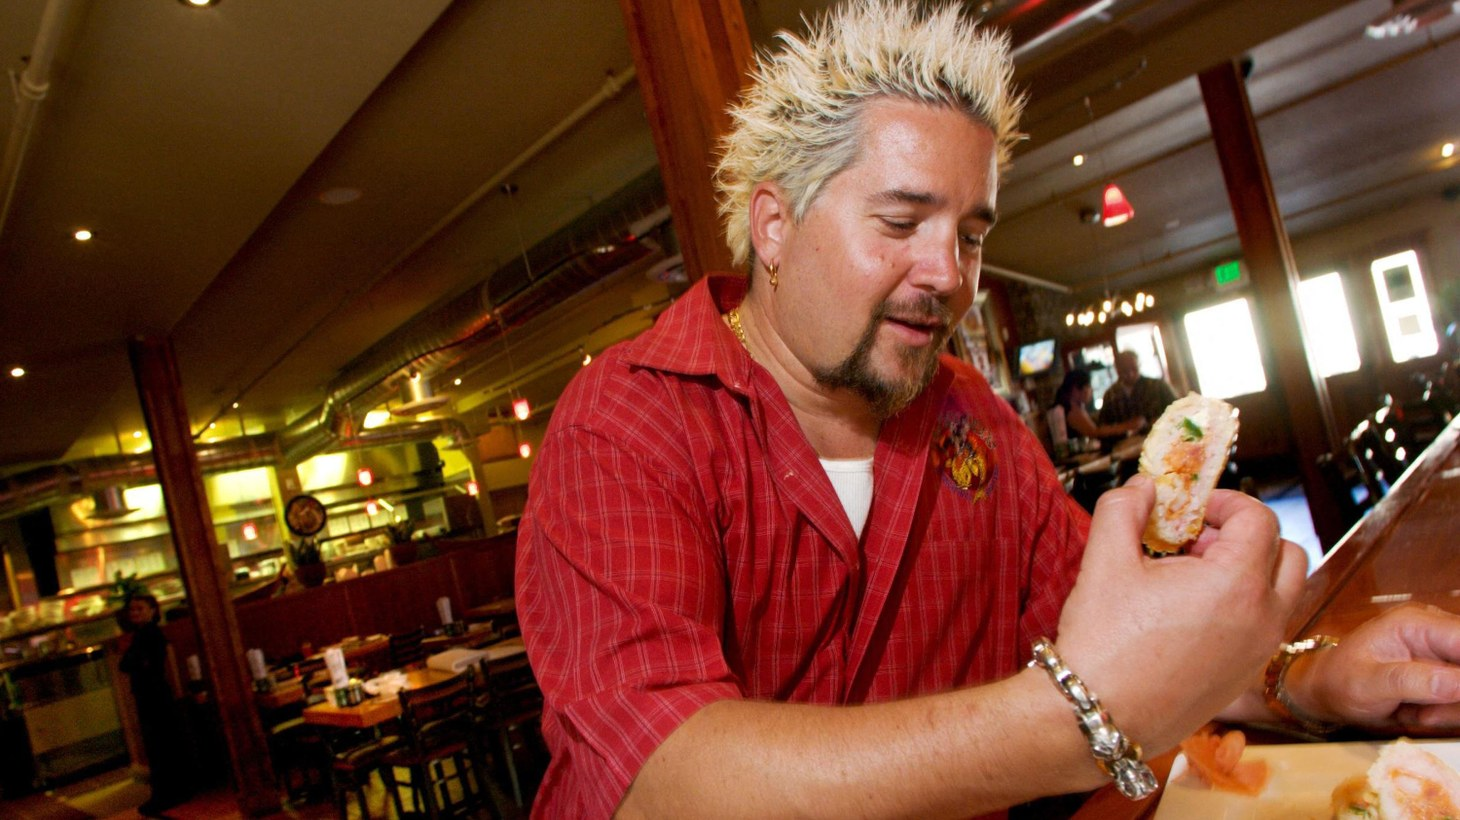 Guy Fieri, restaurateur and food network chef at his restaurant, Tex Wasabi's, in Sacramento, Calif., on March 27, 2007.